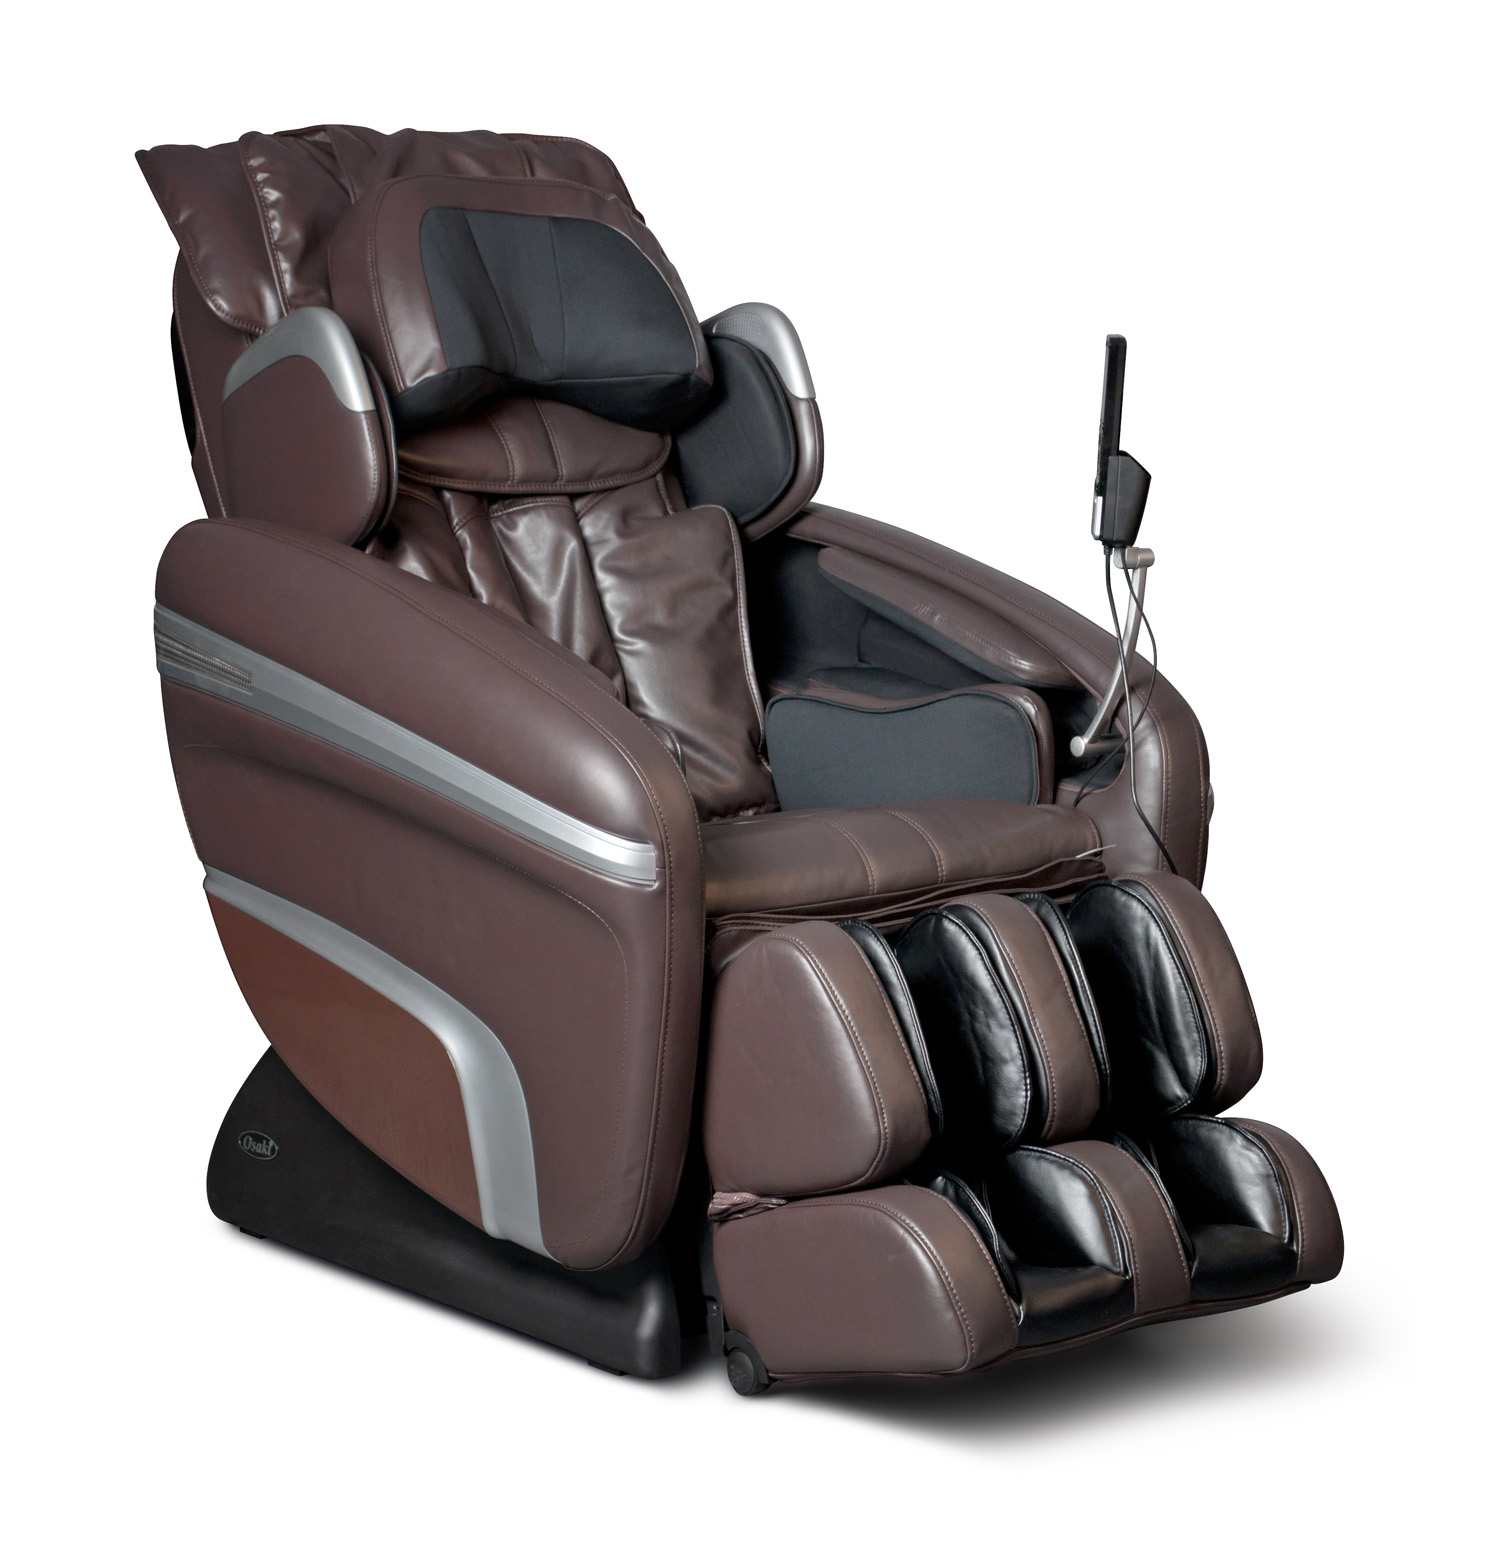 Osaki Massage Chair - Osaki OS-4000